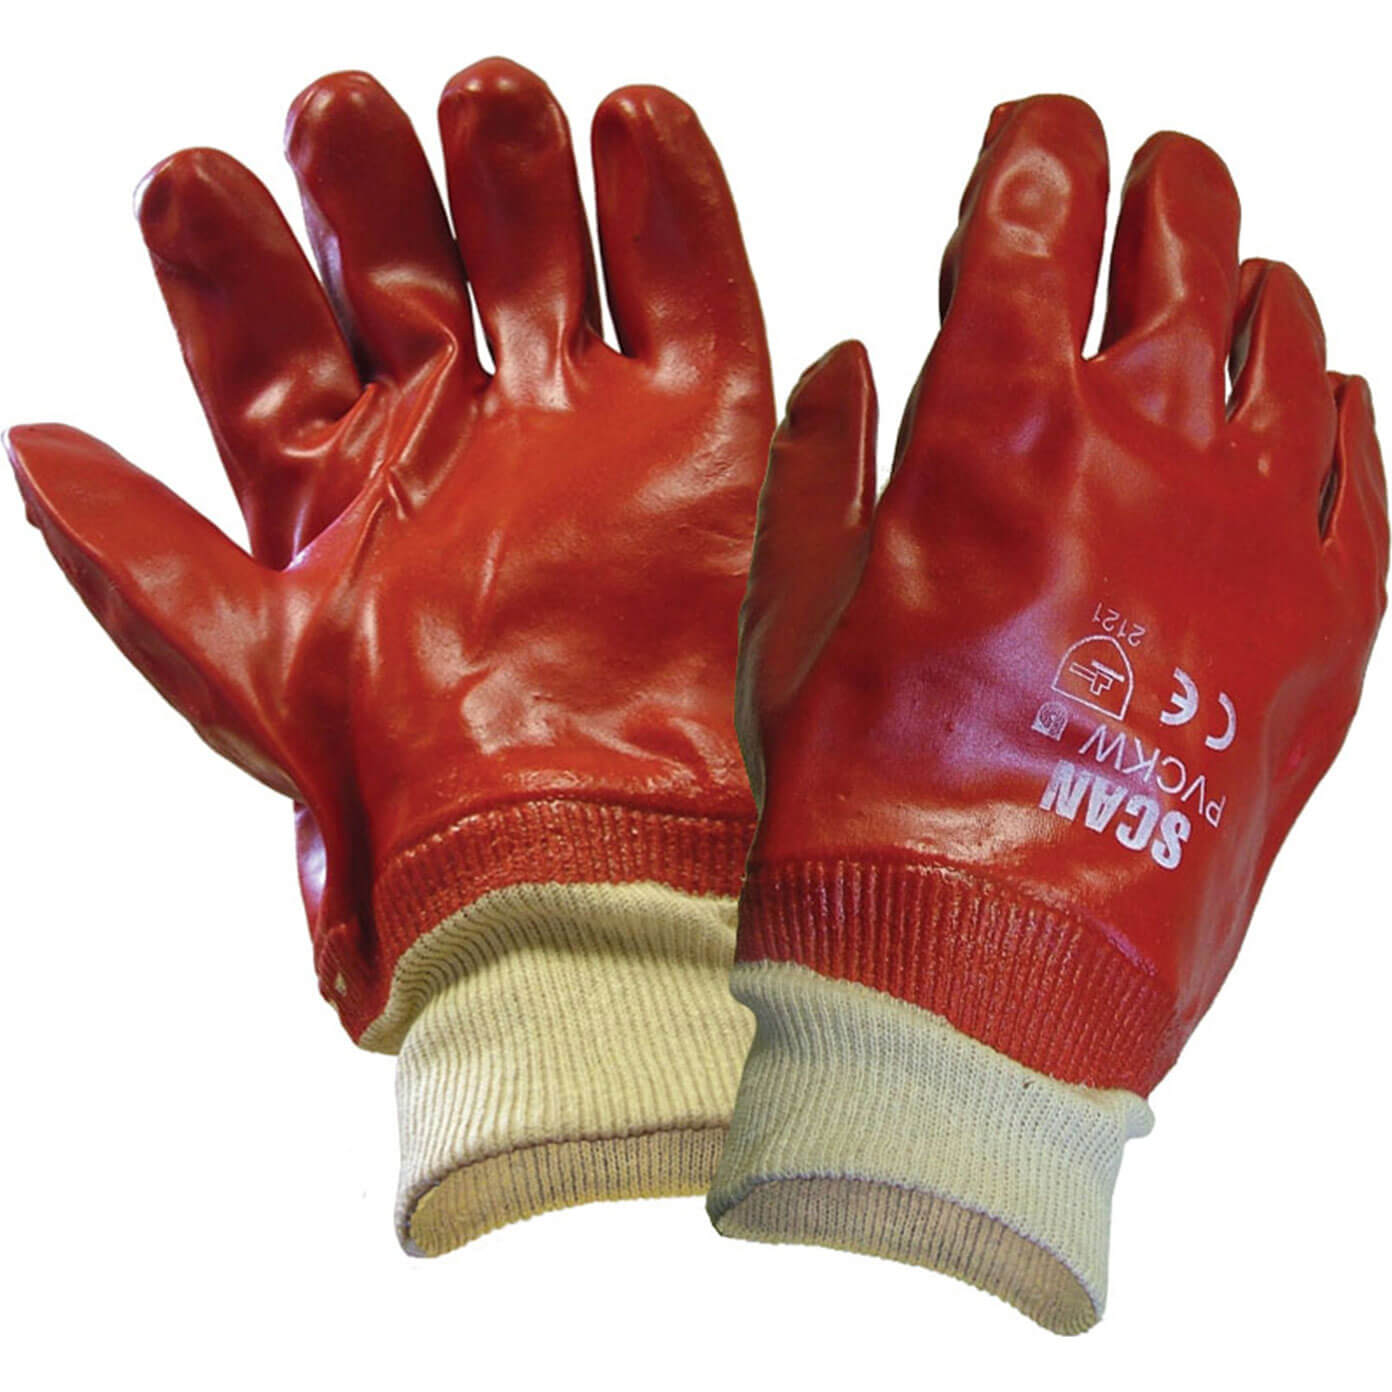 Image of Scan PVC Knitwrist Glove One Size